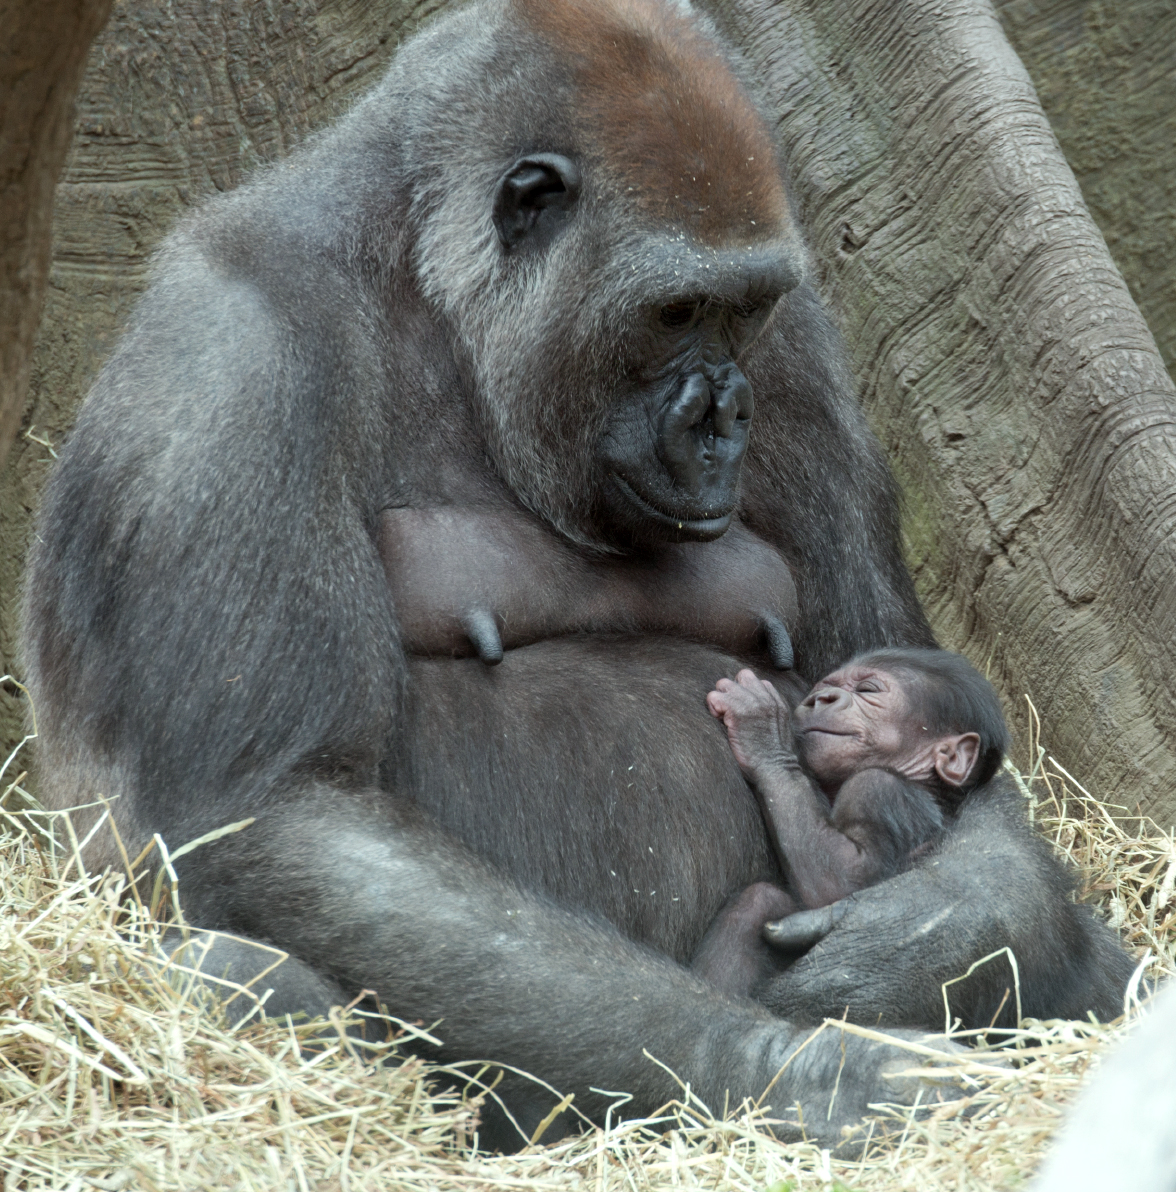 """Tuti,"" a female Western Lowland gorilla looks down at her sleeping baby at the Bronx Zoo in New York. With the addition of two new baby gorillas recently born at the zoo, the Bronx Zoo''s Congo Gorilla Forest is now home to 20 gorillas."